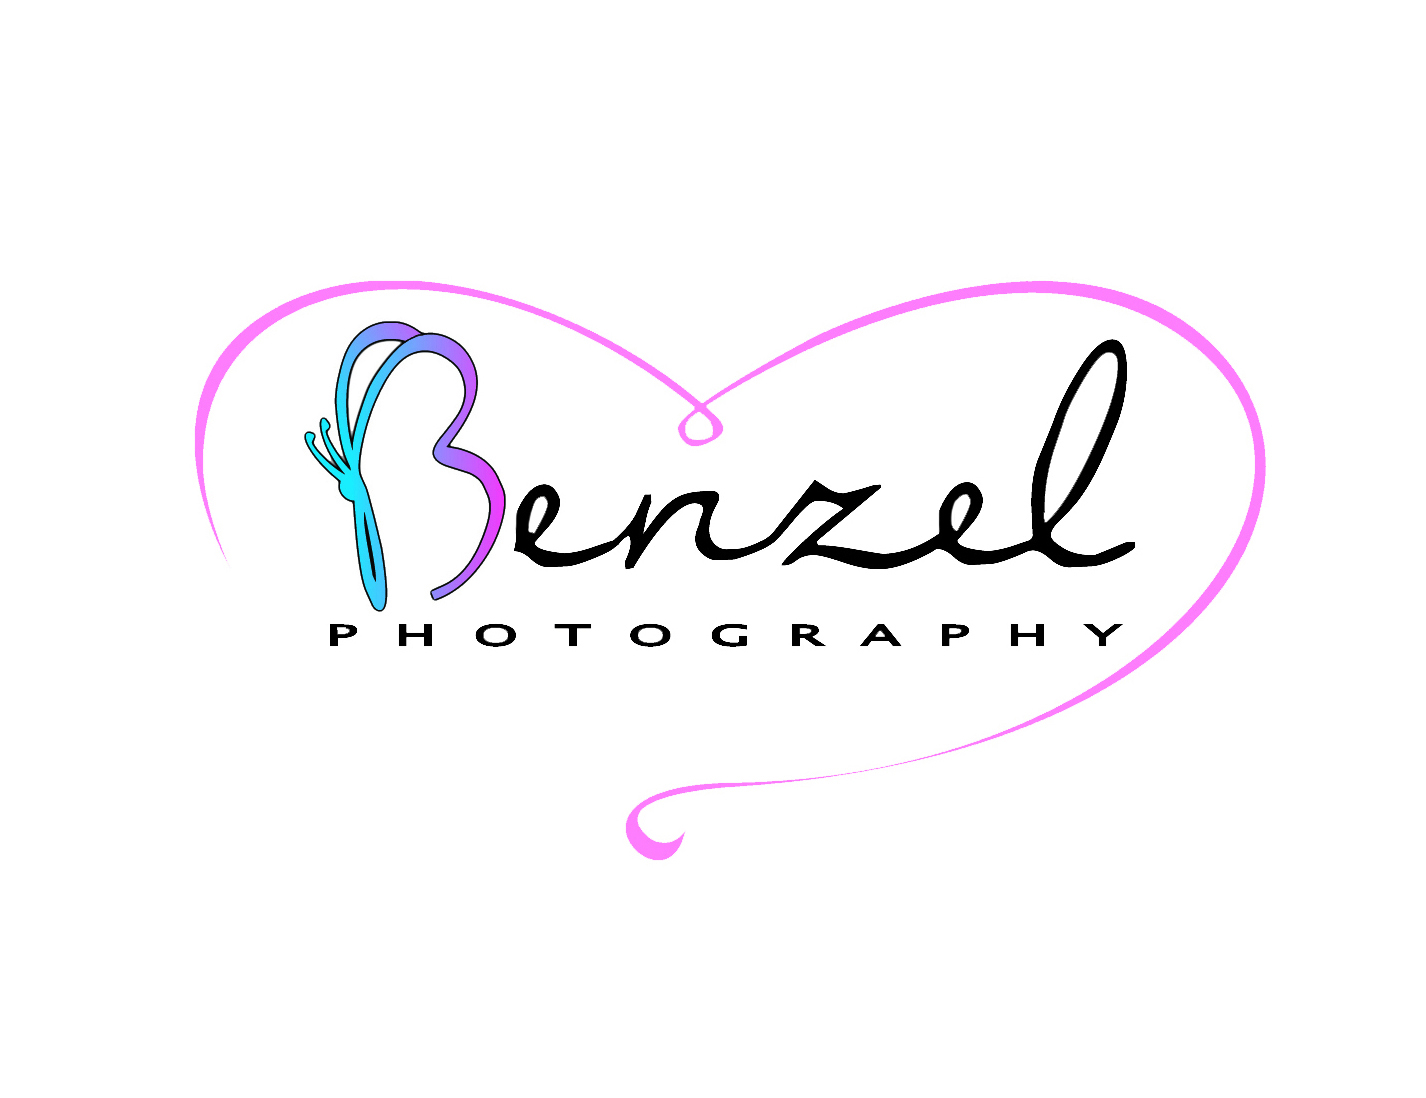 Benzel Photography